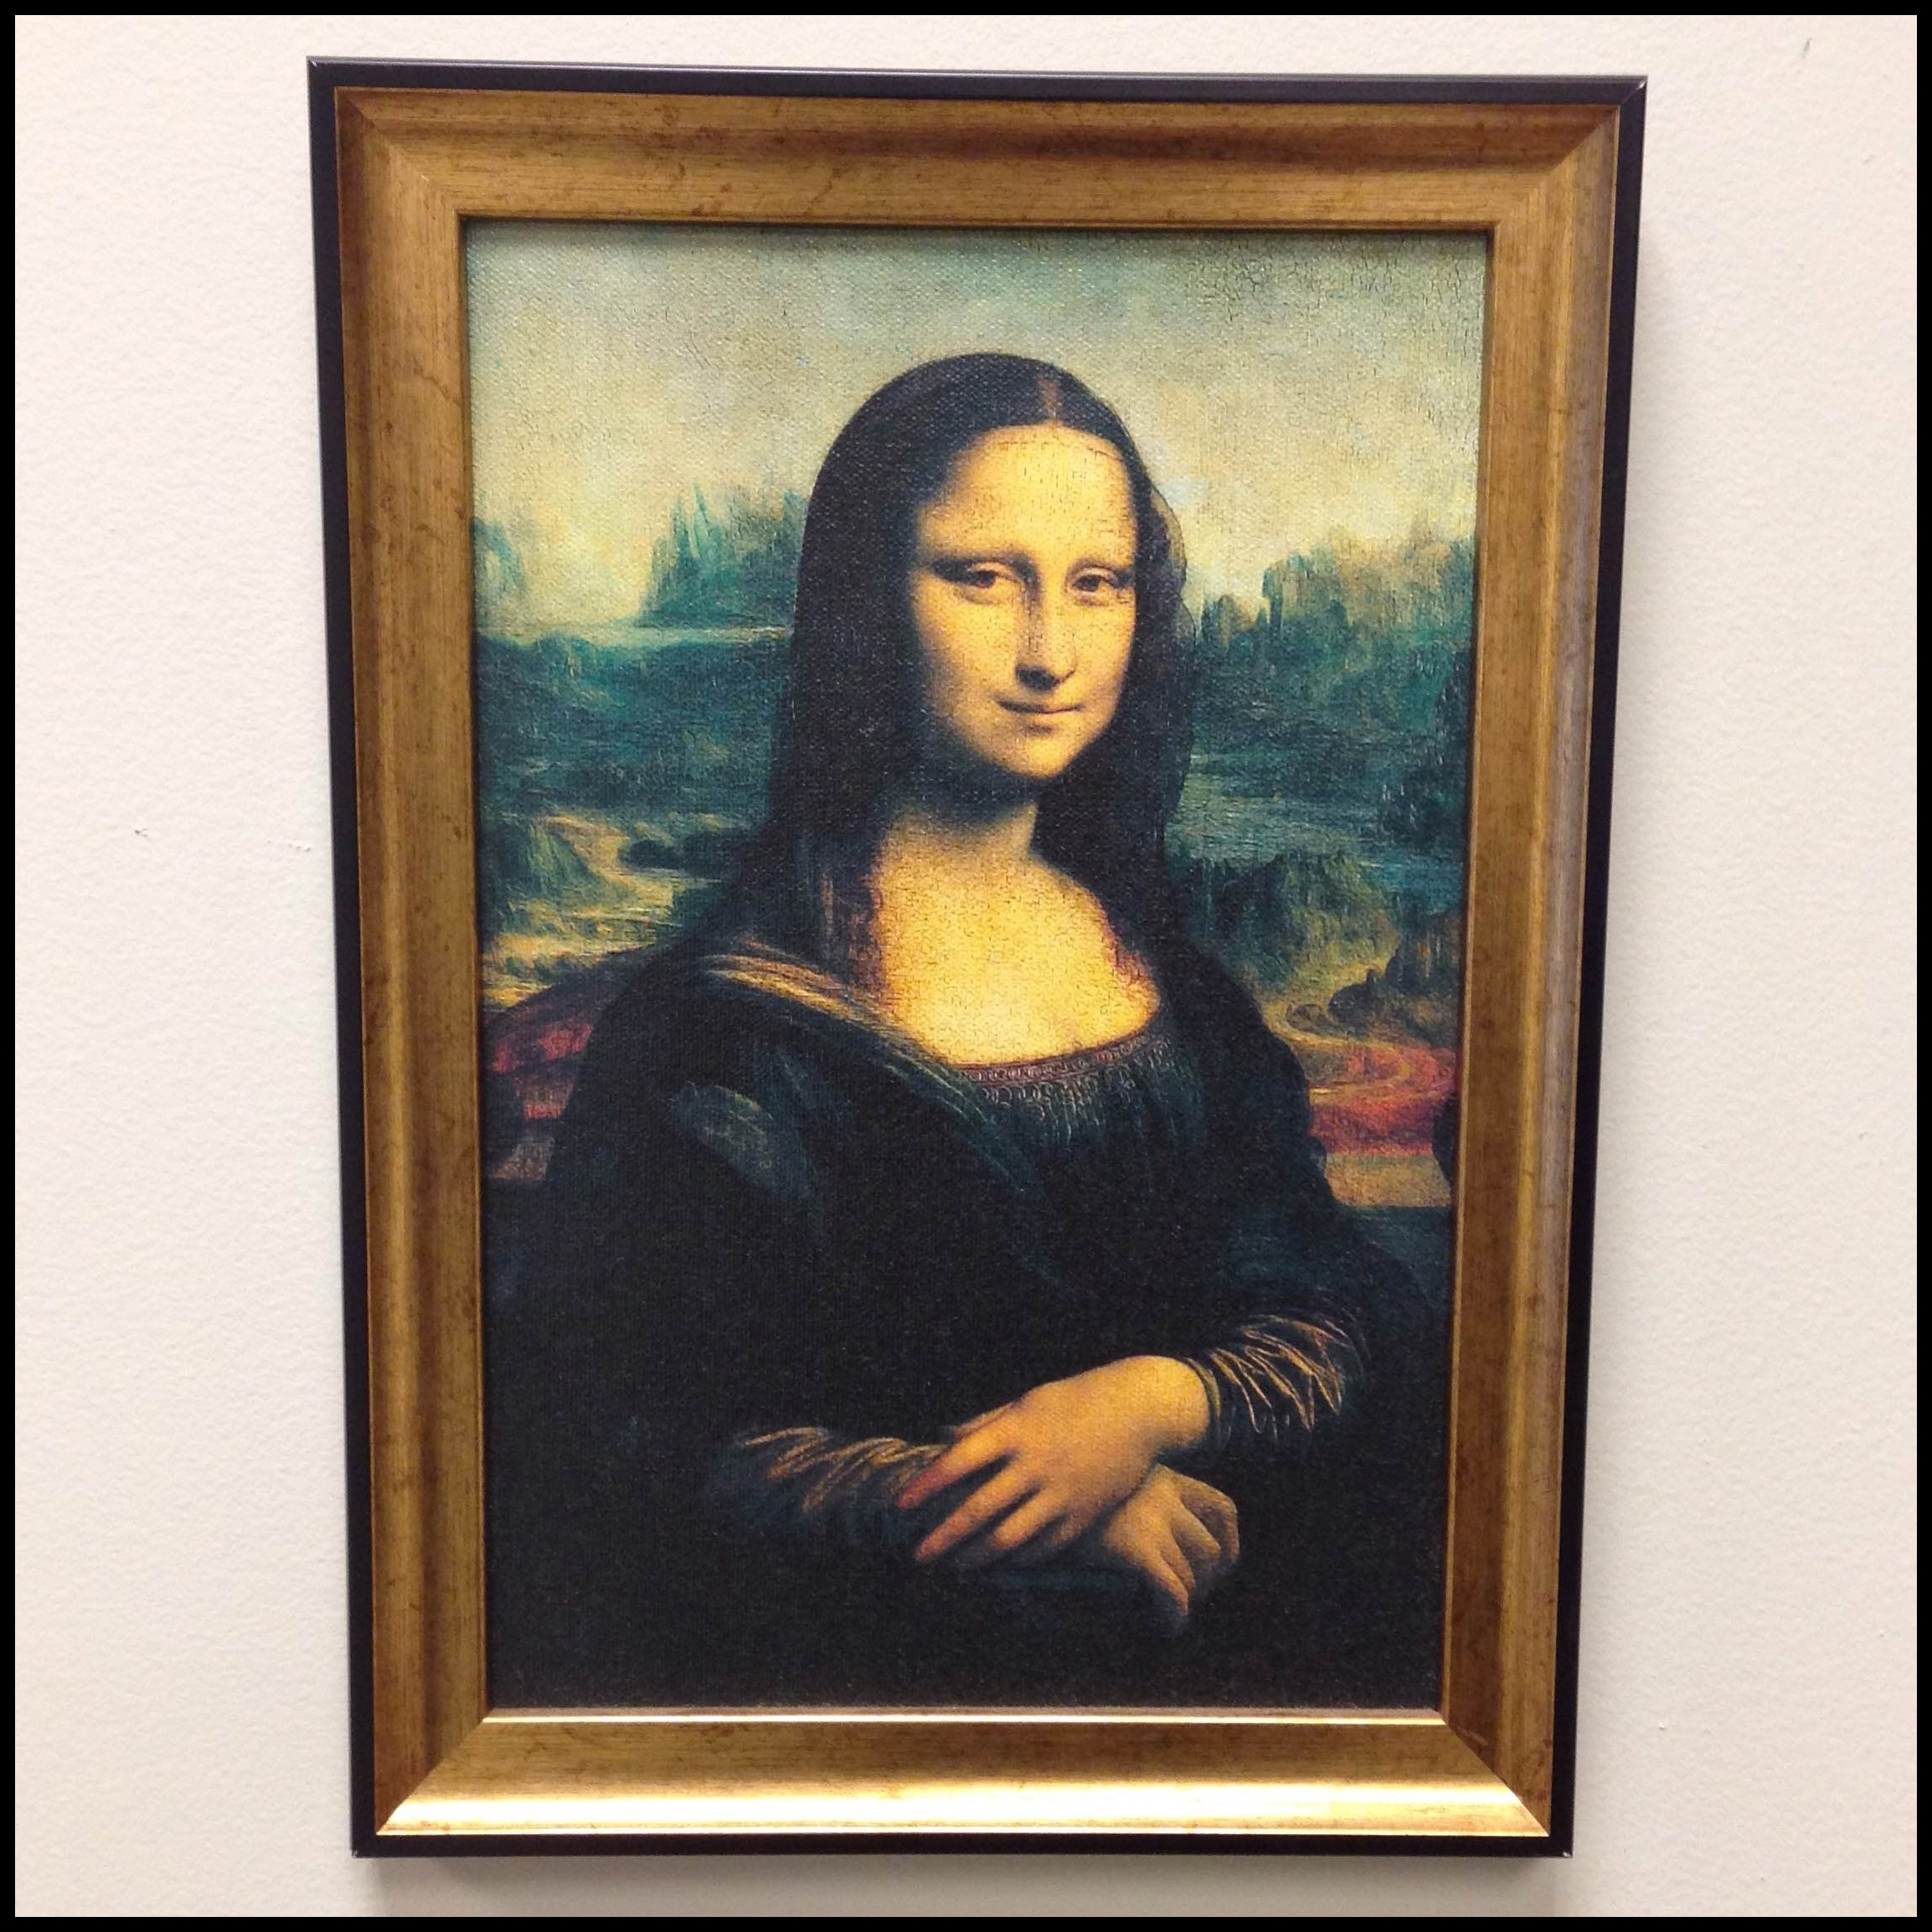 Well Known Framed Classic Art Prints For Selecting The Best Frame For Your Canvas Print Or Fine Art (View 9 of 15)